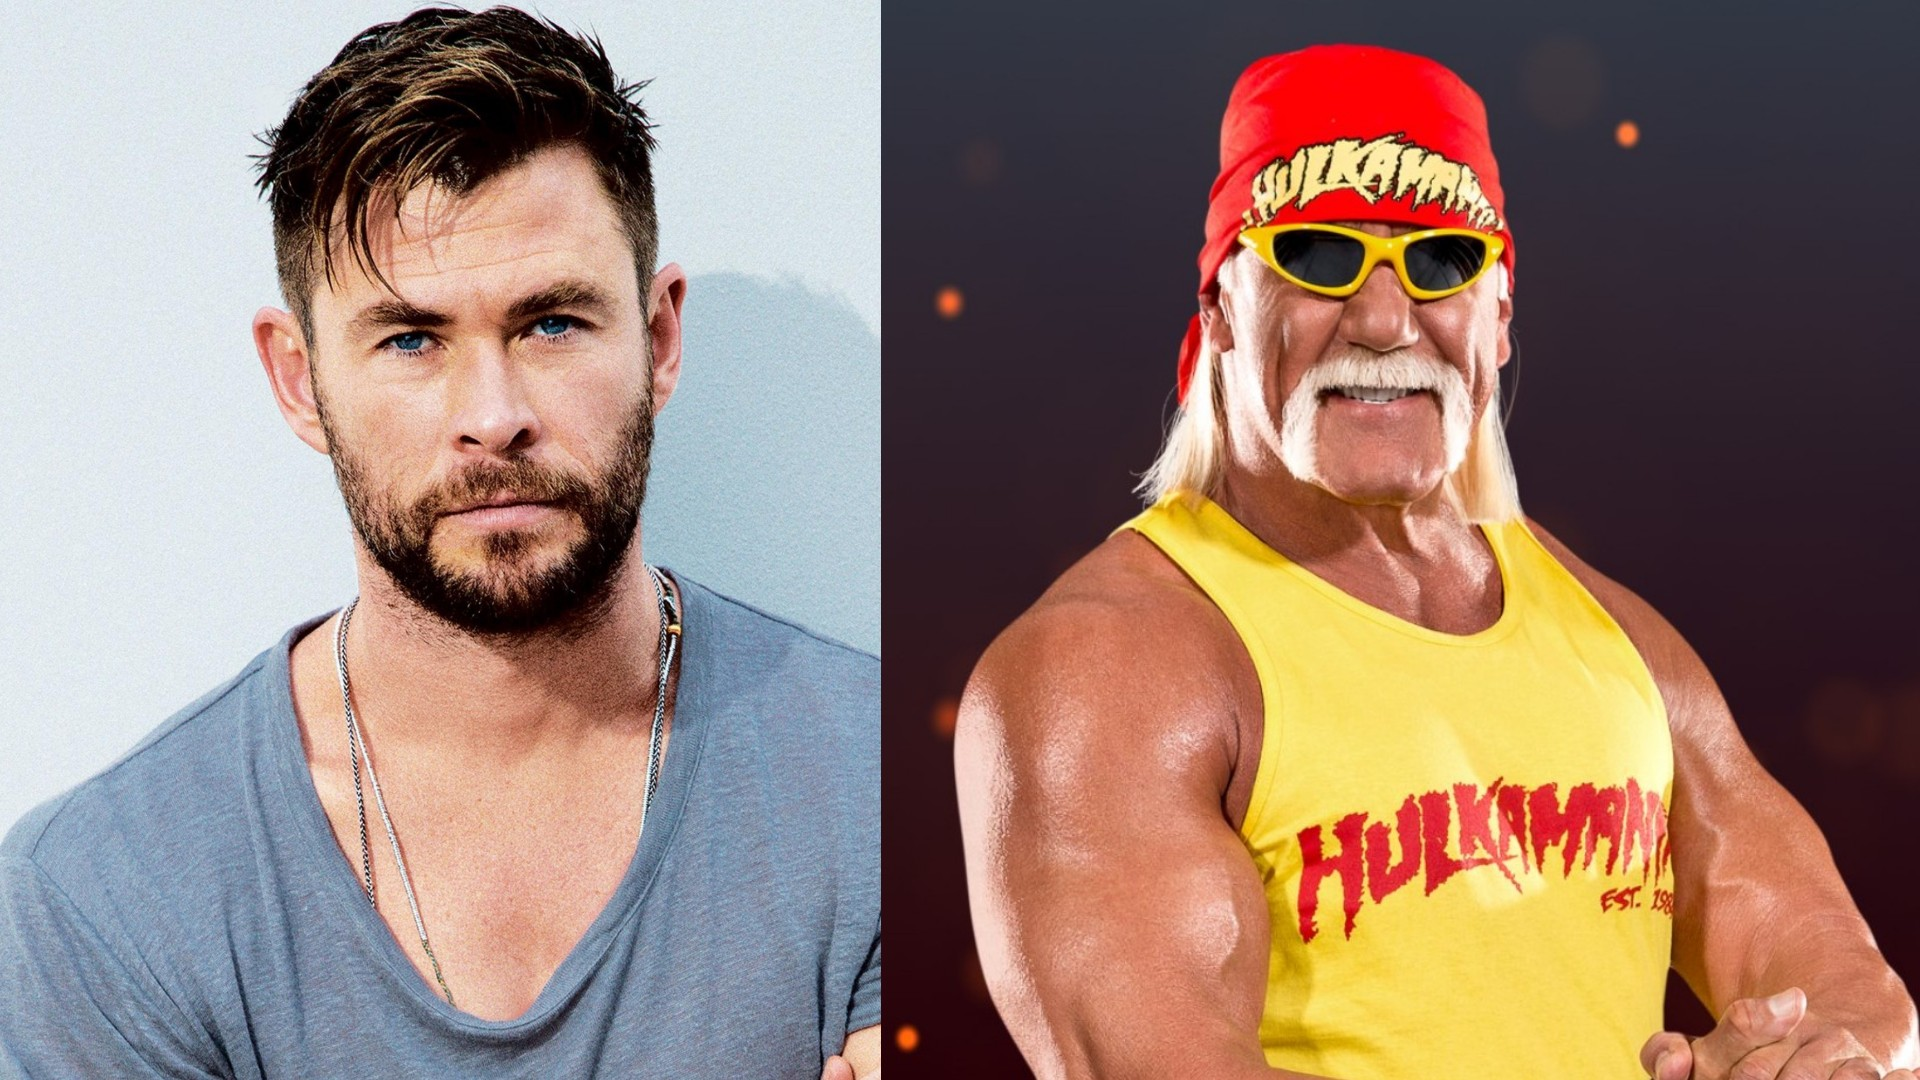 Fotografía de Chris Hemsworth y Hulk Hogan